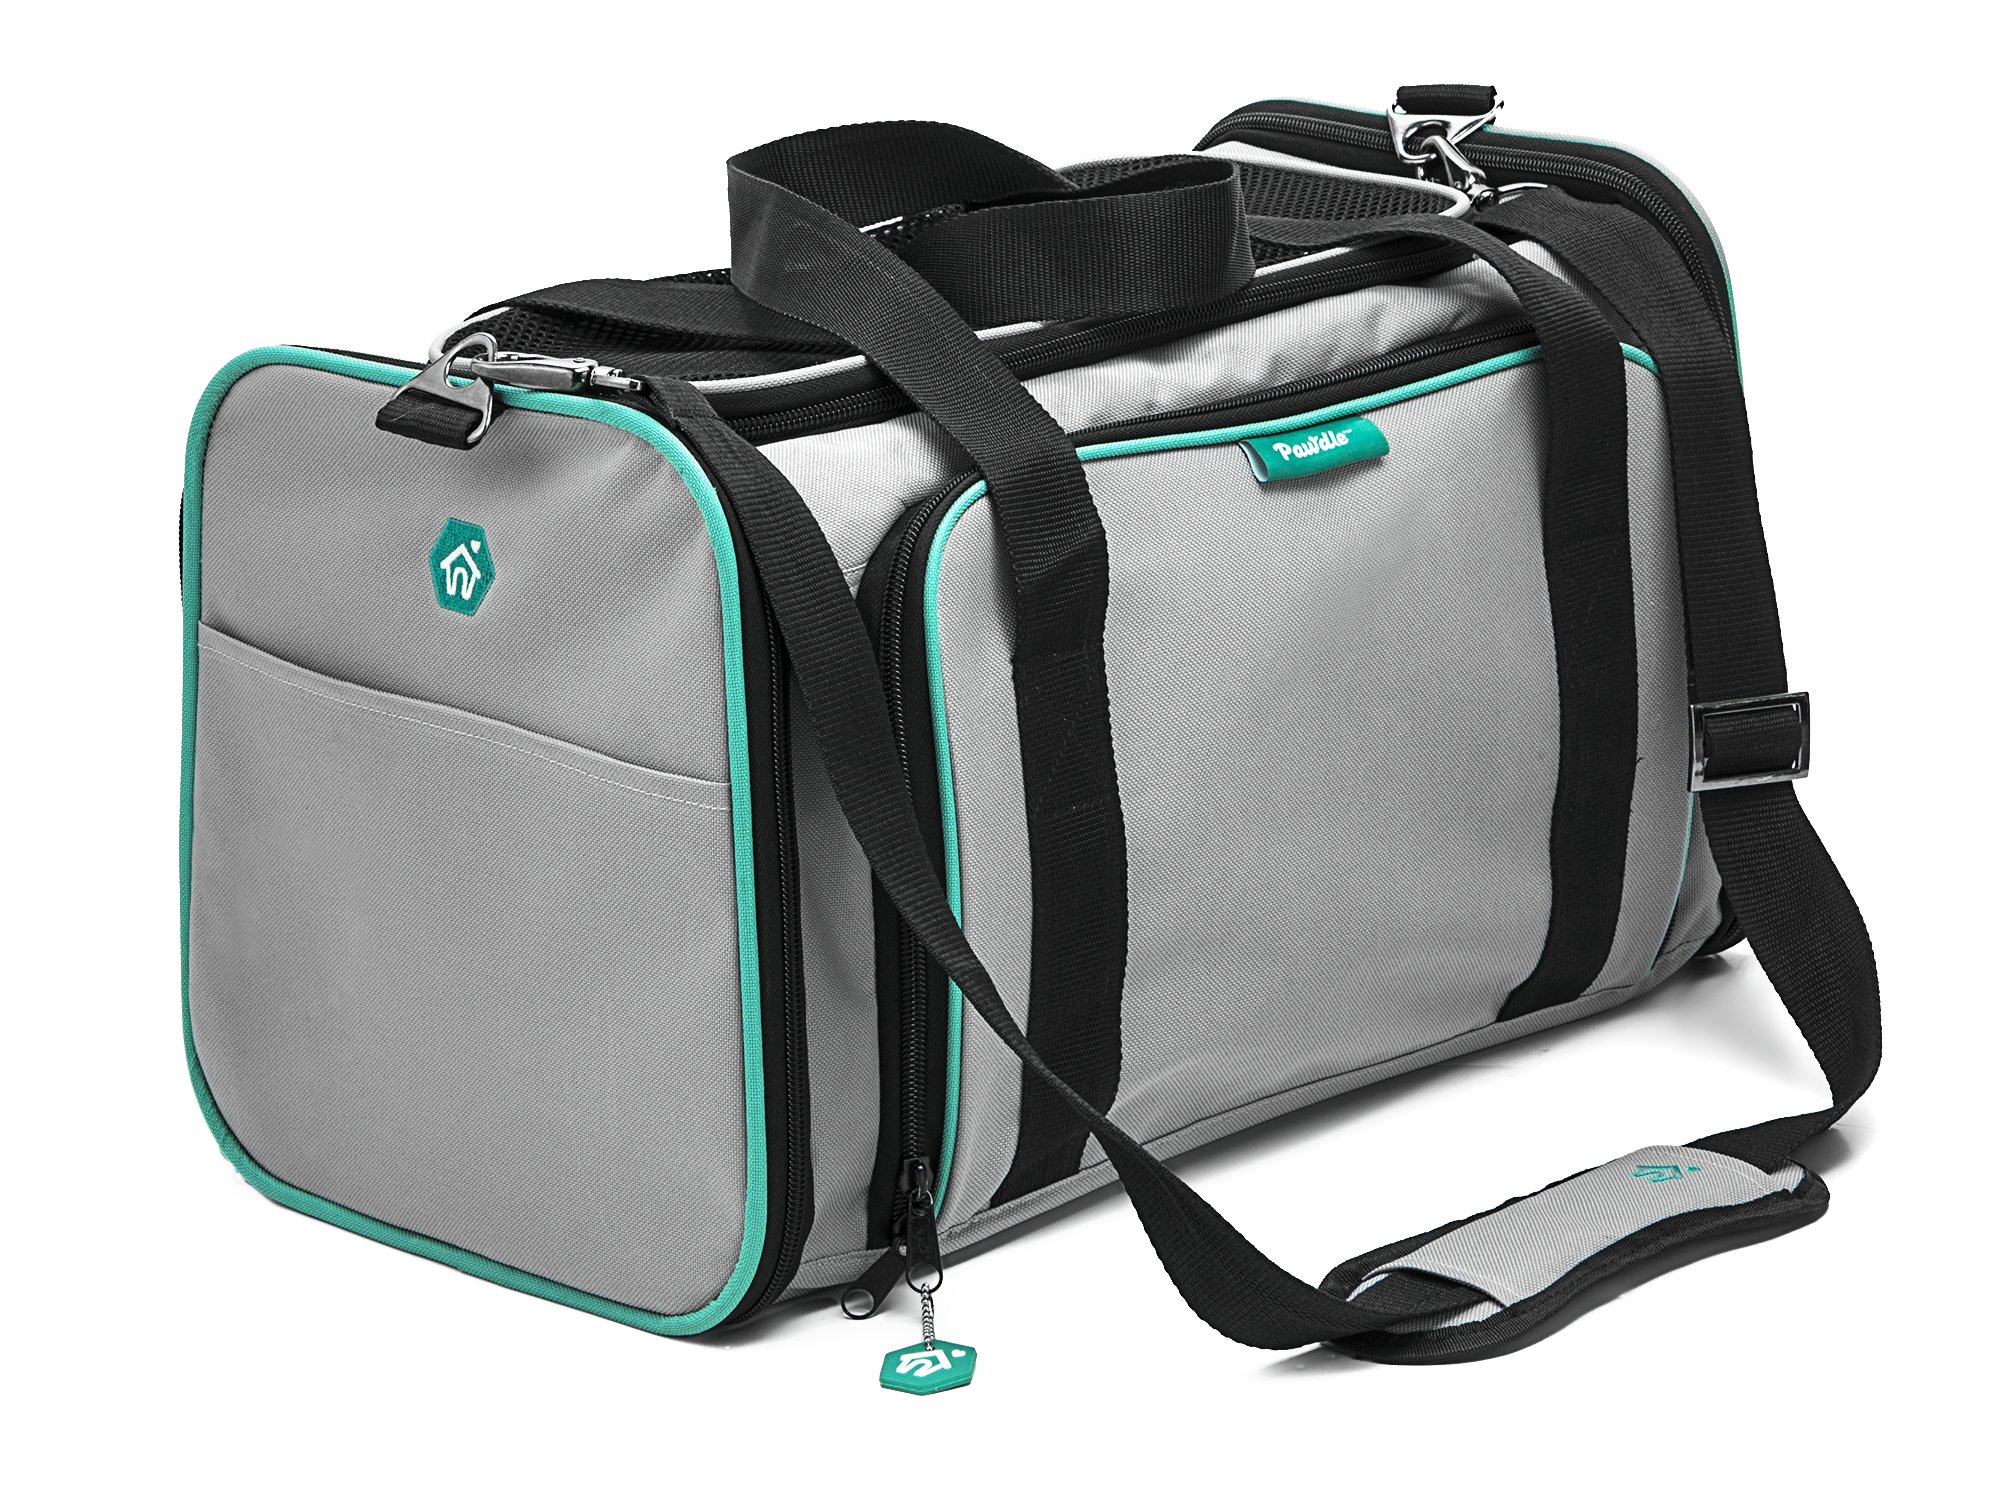 Pawdle Expandable and Foldable Pet Carrier Domestic Airline Approved (Heather Gray) by Pawdle (Image #5)